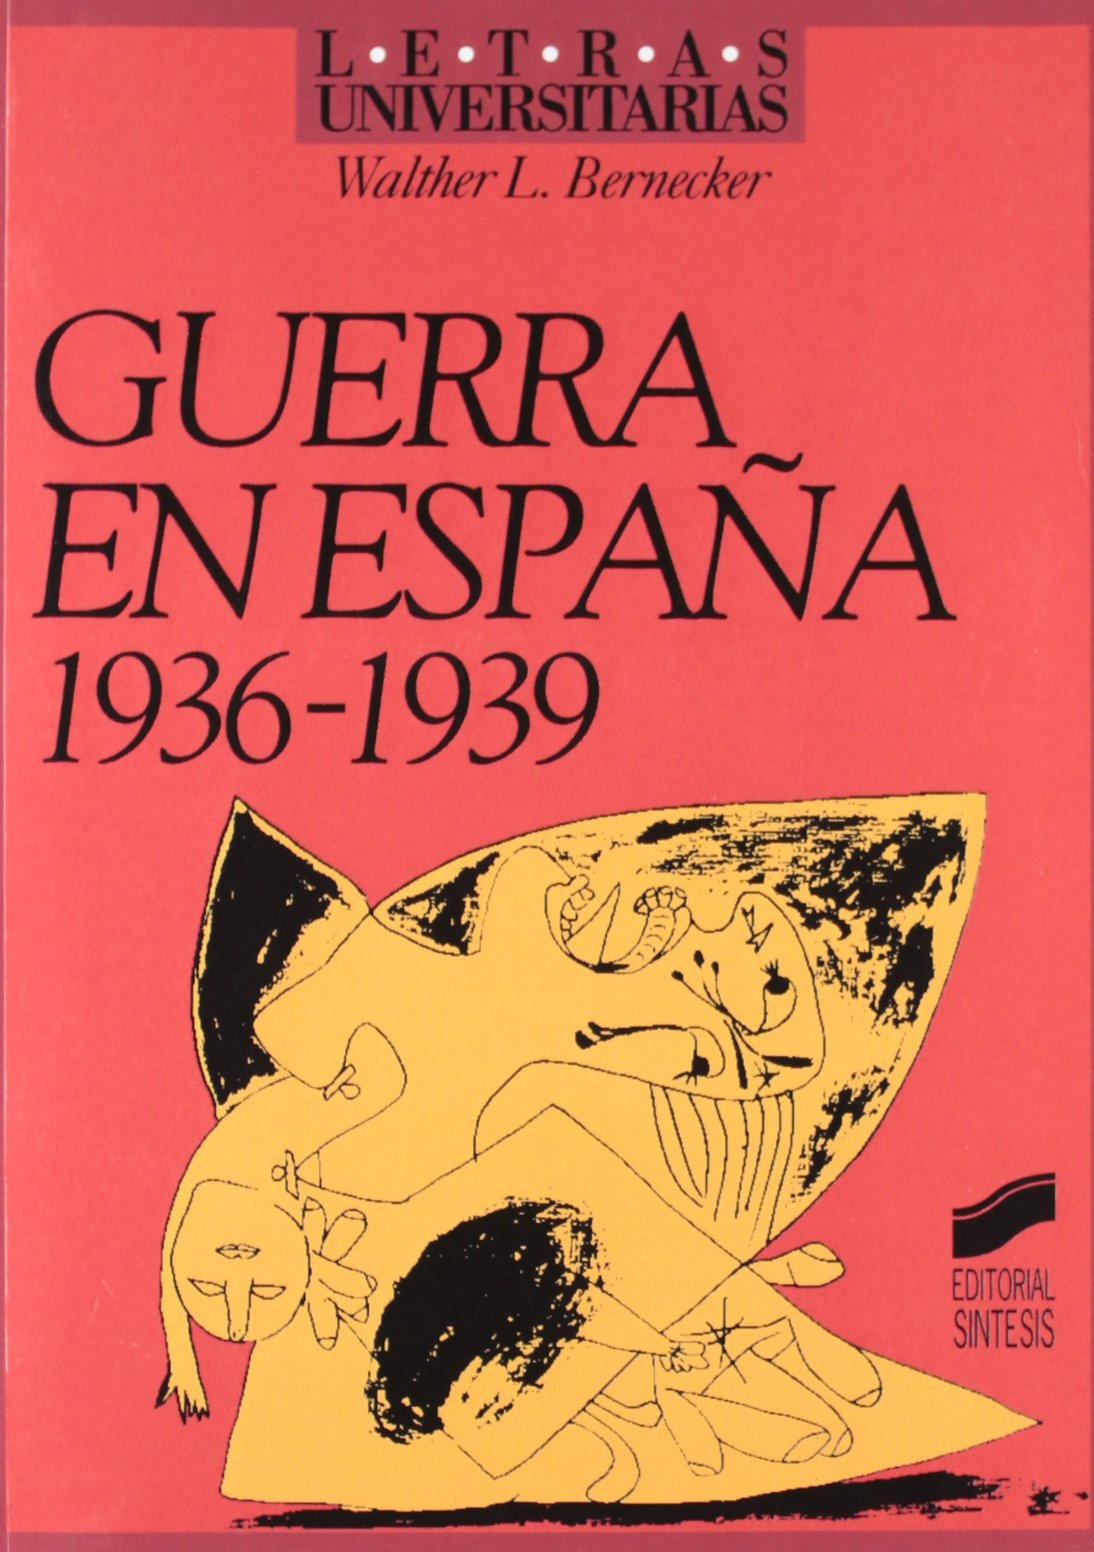 Guerra en España 1936-1939 : 15 Letras universitarias: Amazon.es ...